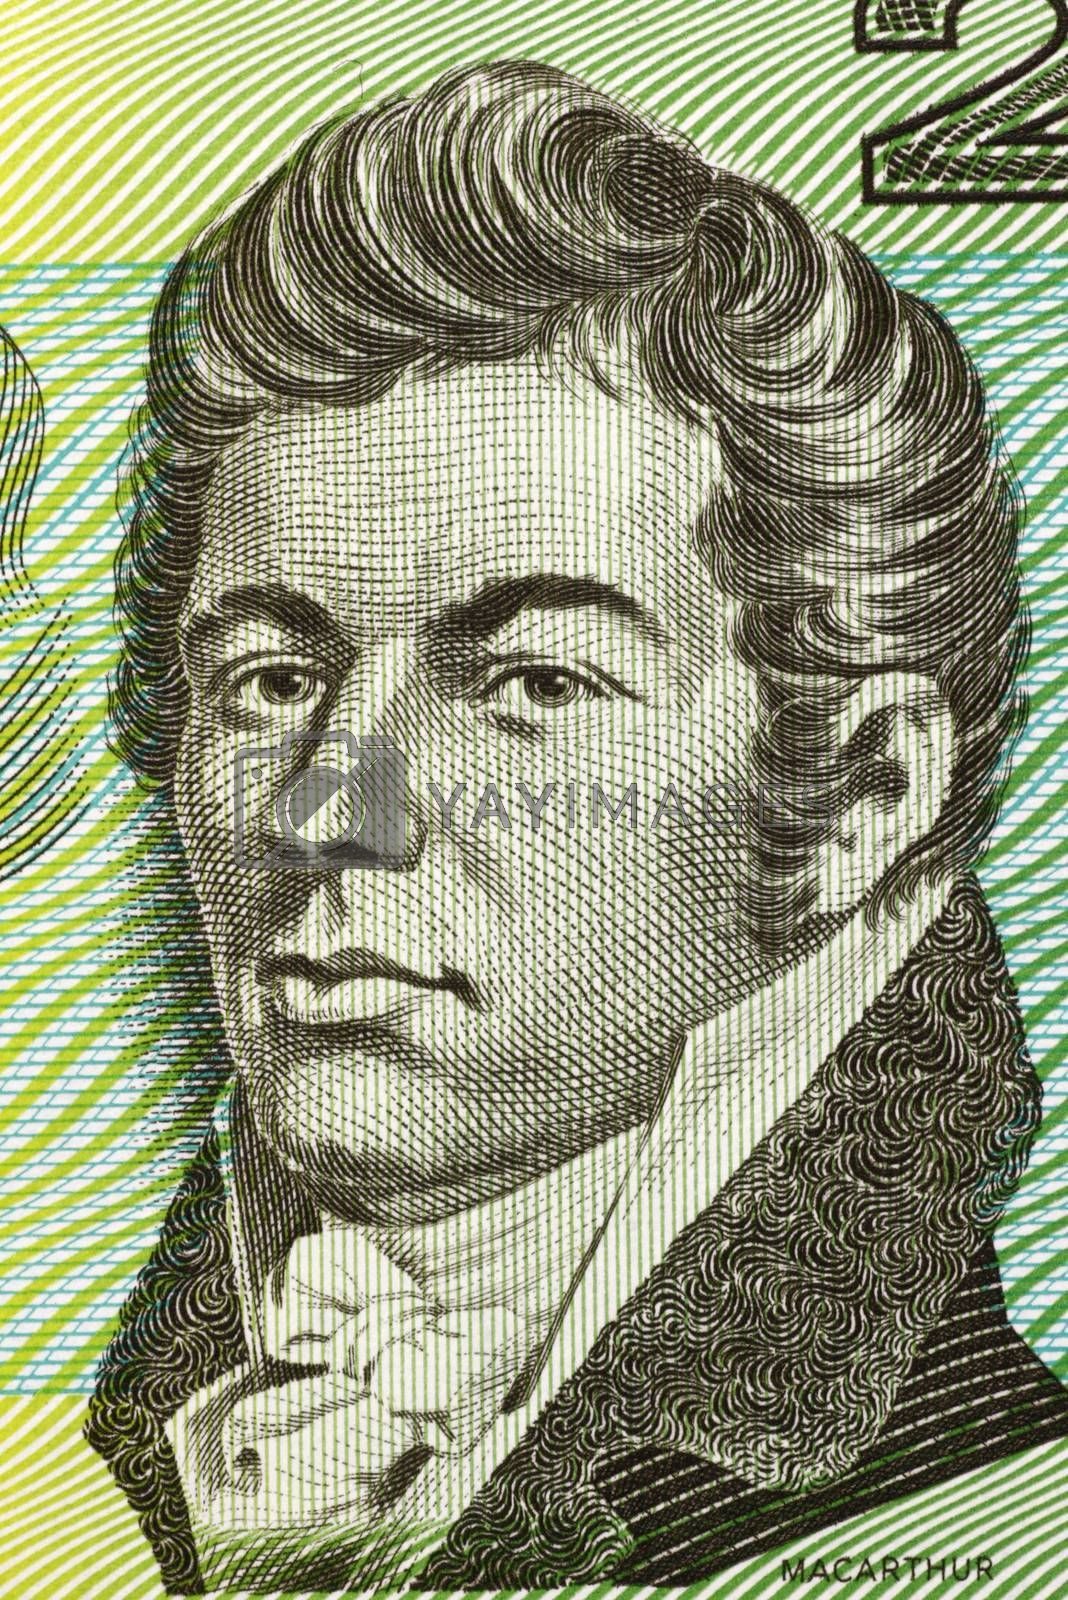 John Macarthur (1767-1834) on 2 Dollars 1966 banknote from Australia. British army officer, entrepreneur, politician, architect and wool industry pioneer of settlement in Australia.